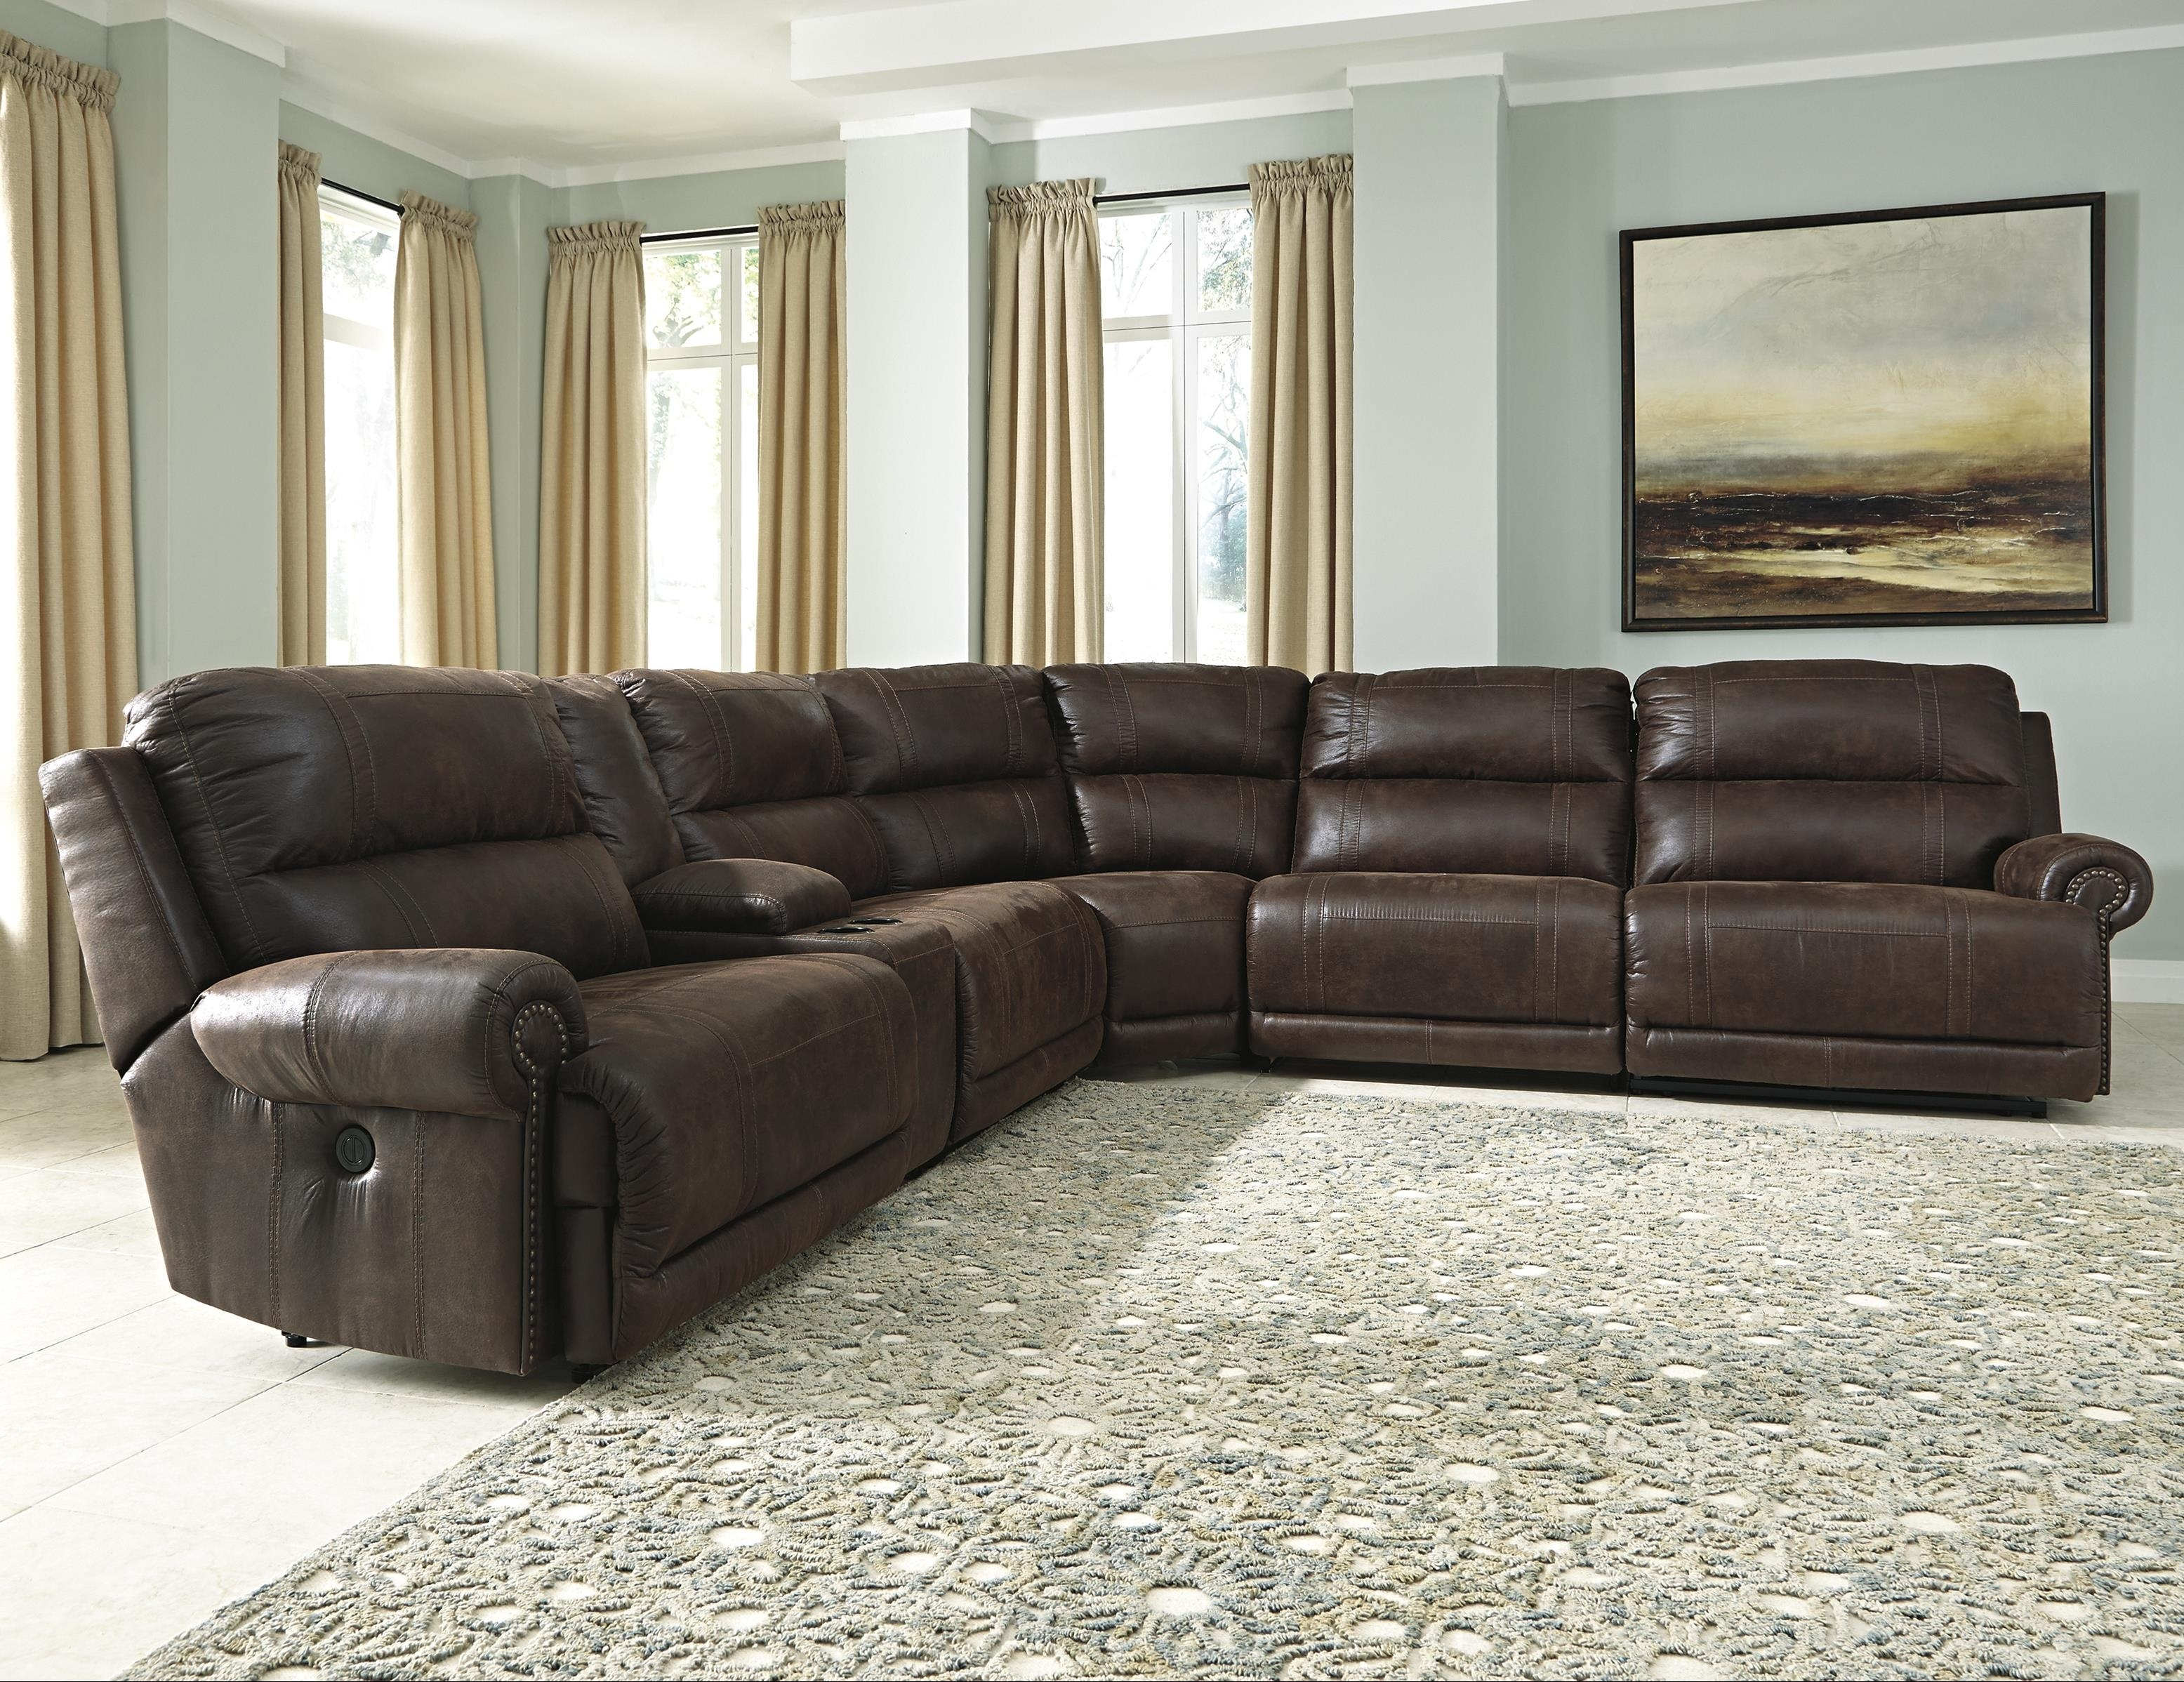 6 Piece Faux Pu Leather Sectional Reclining Sofa | Baci Living Room In Denali Charcoal Grey 6 Piece Reclining Sectionals With 2 Power Headrests (Image 1 of 25)